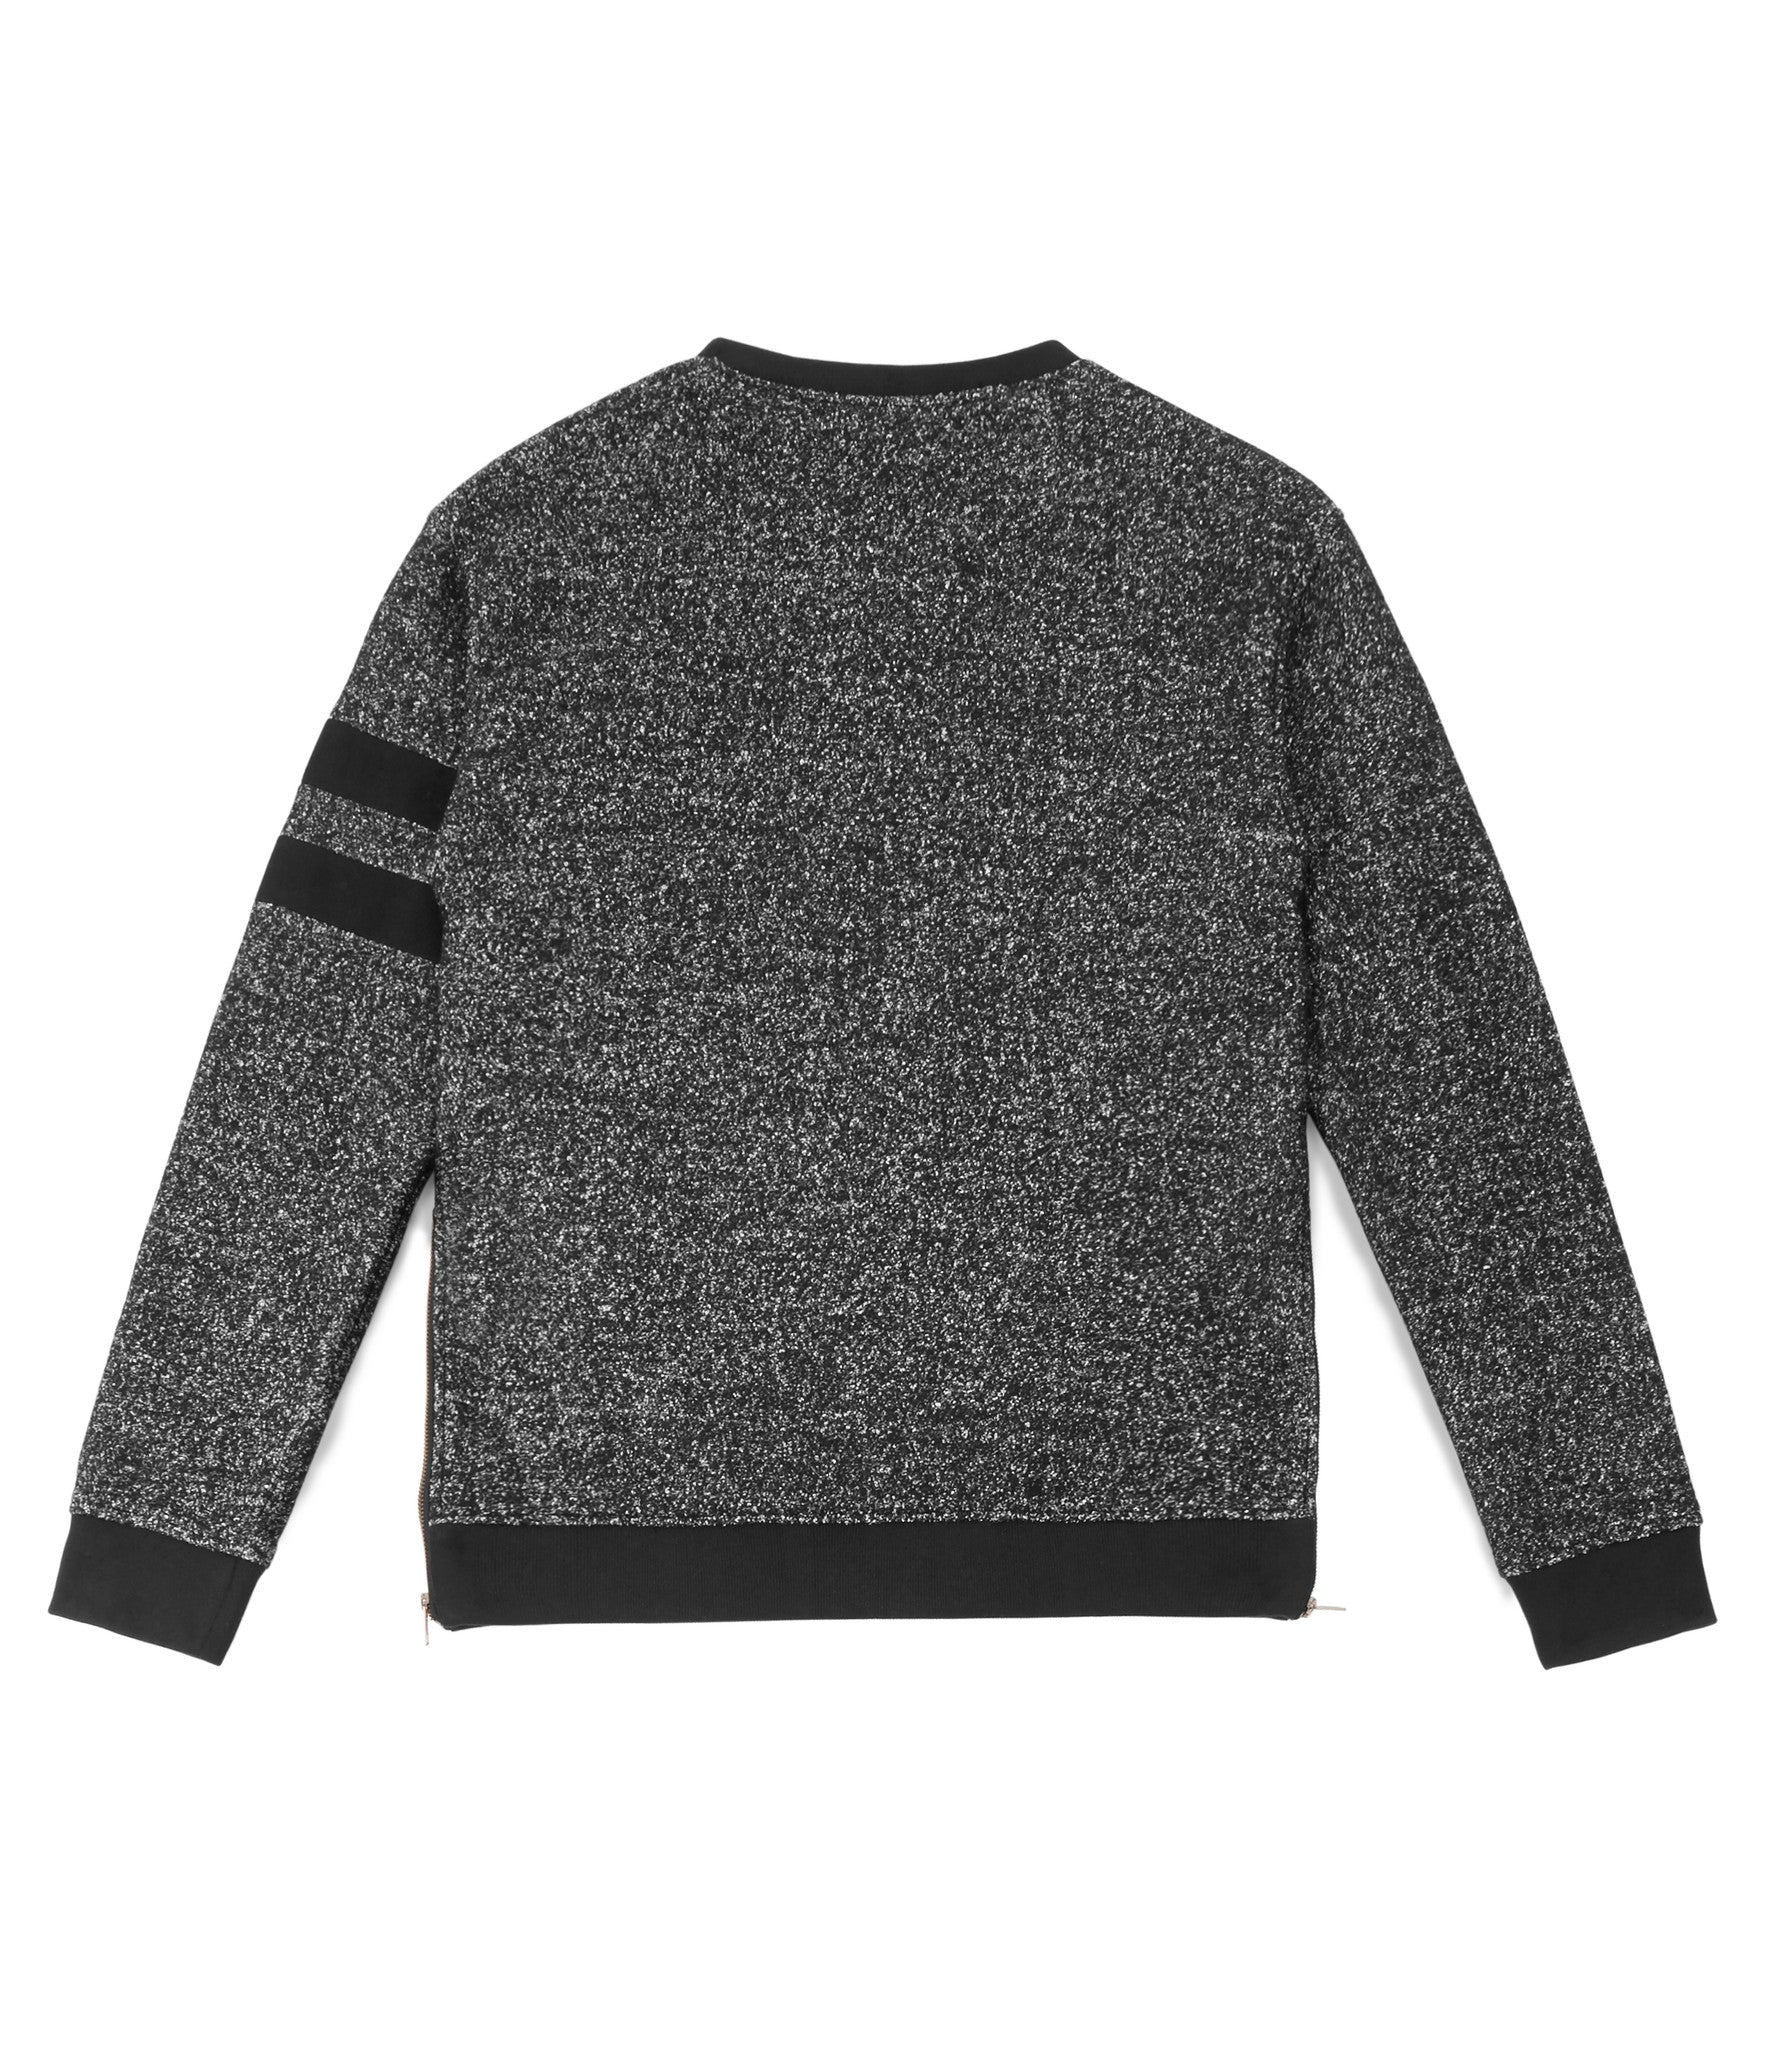 SW301 Oversized Mélange Wool Sweatshirt - Black - underated london - underatedco - 5